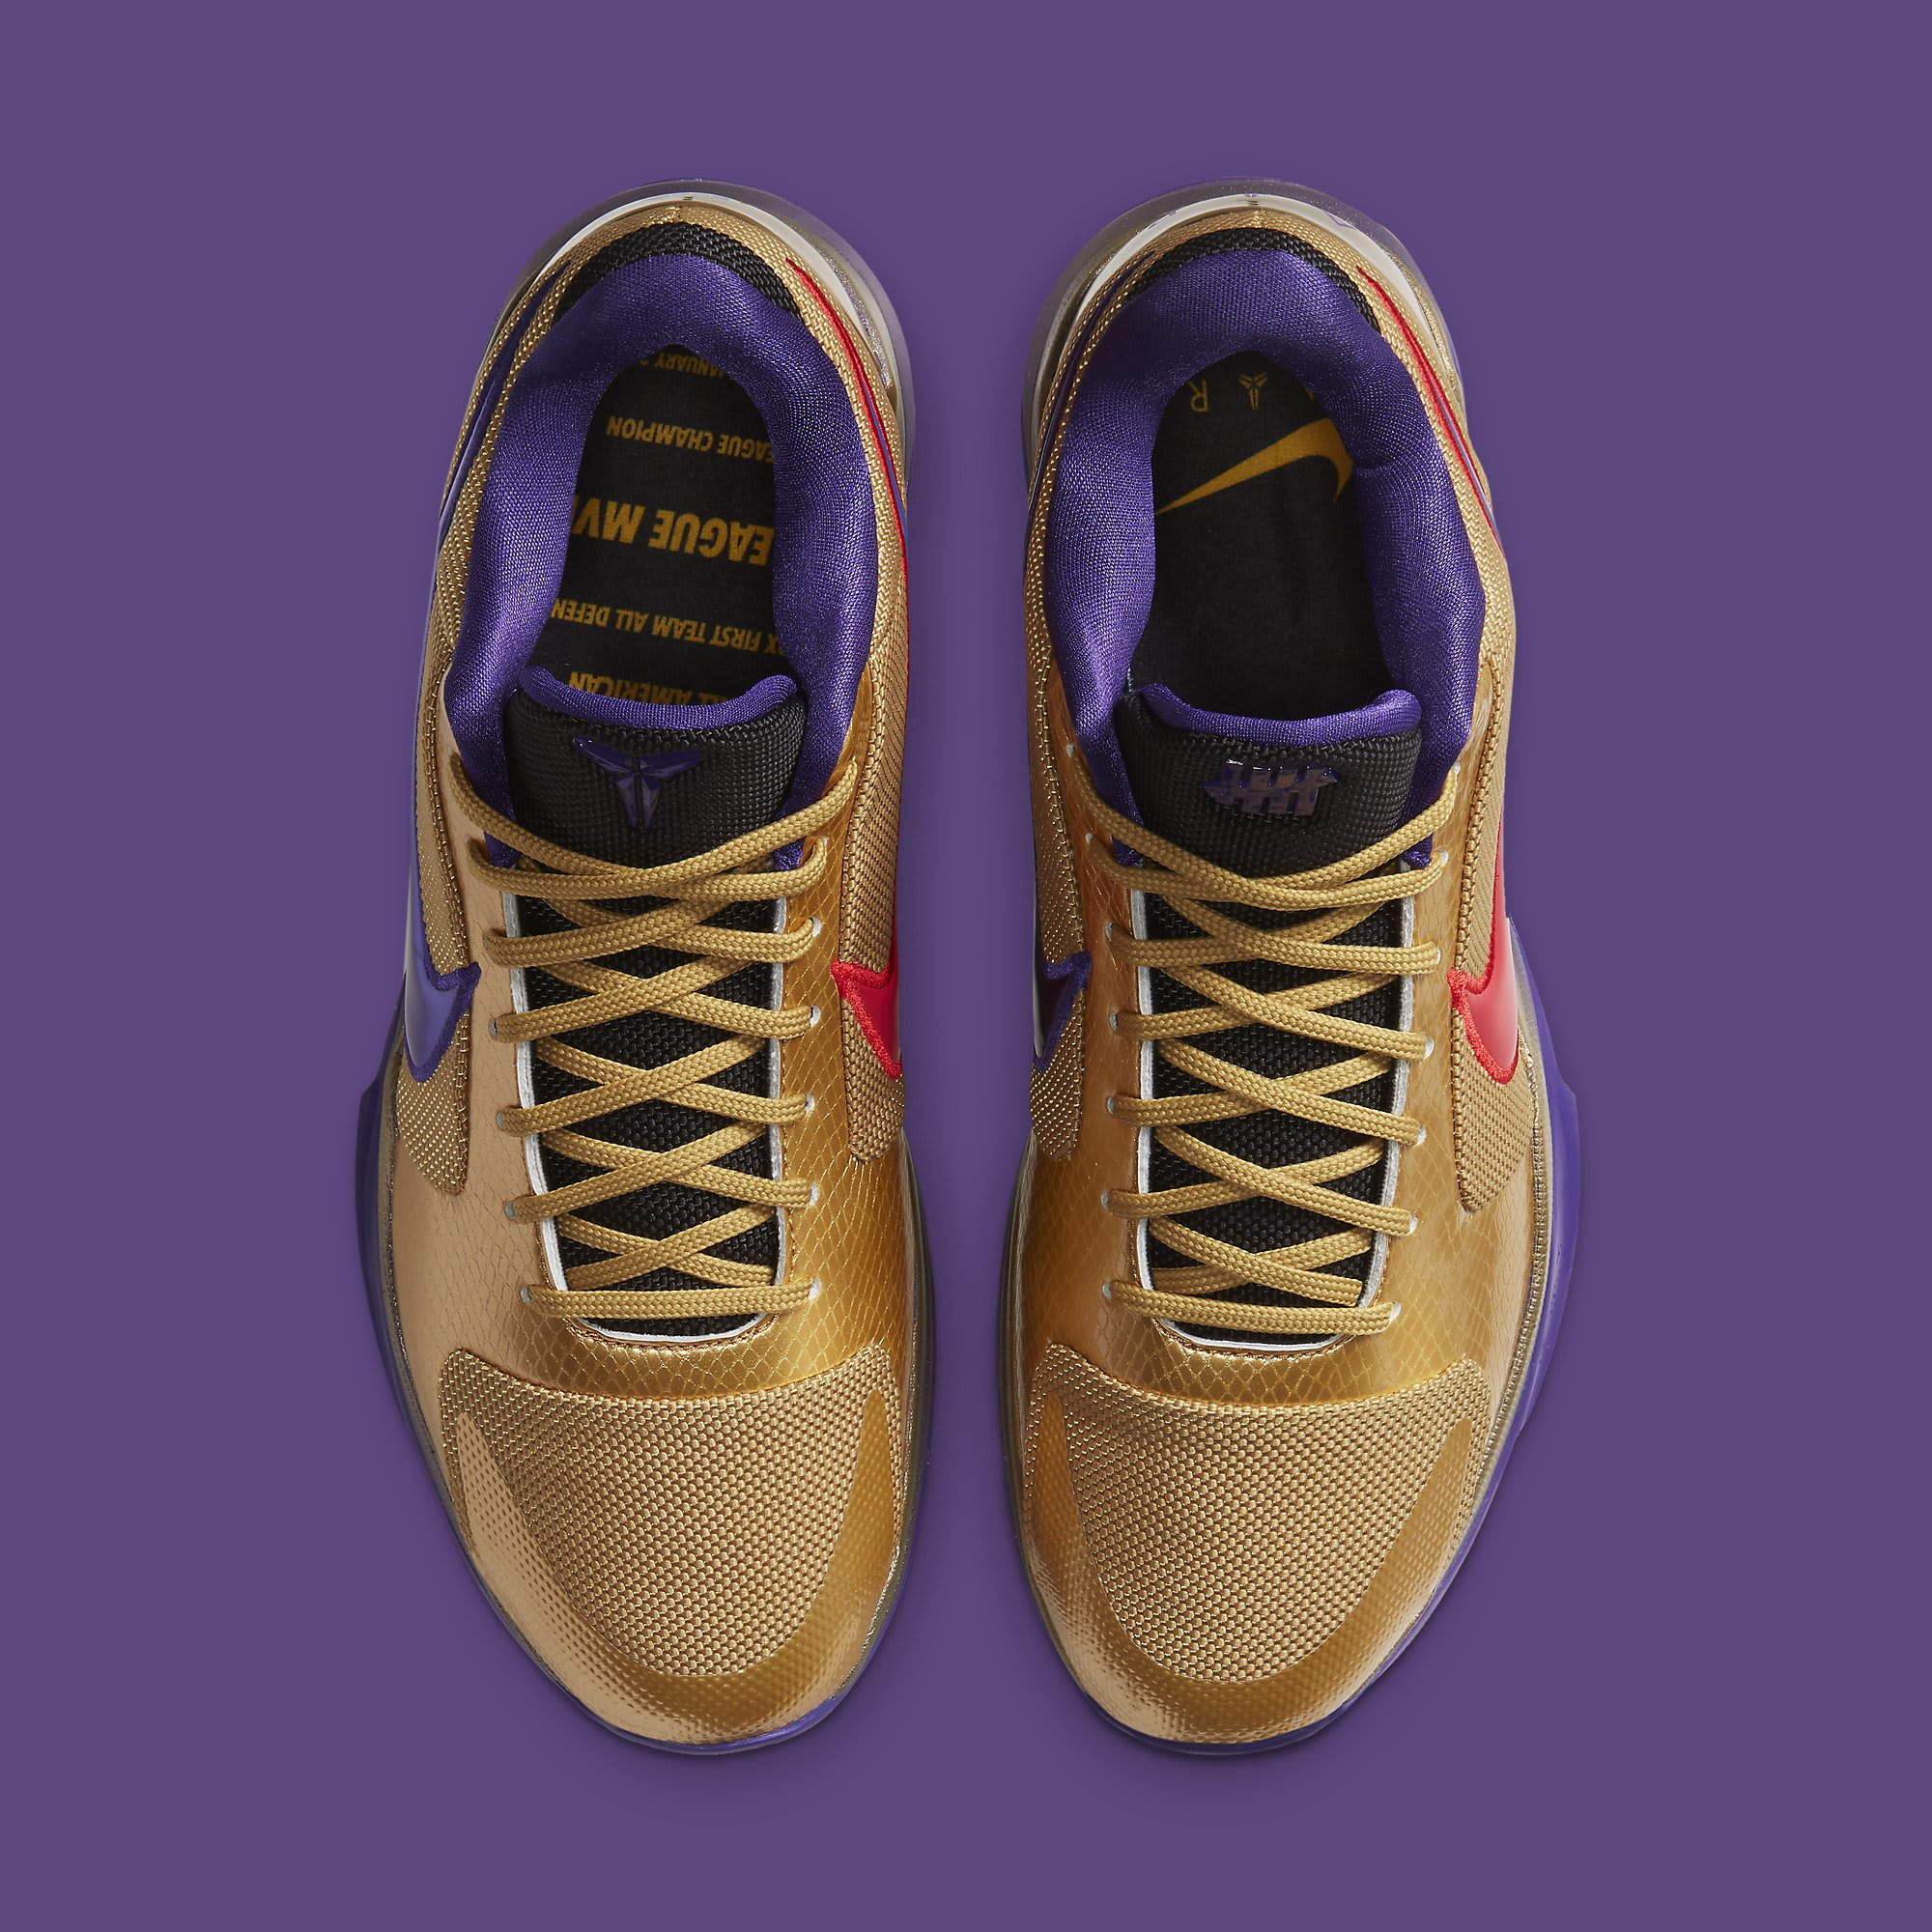 Undefeated x Nike Kobe 5 Gold Hall of Fame Release date DA6809-700 Top